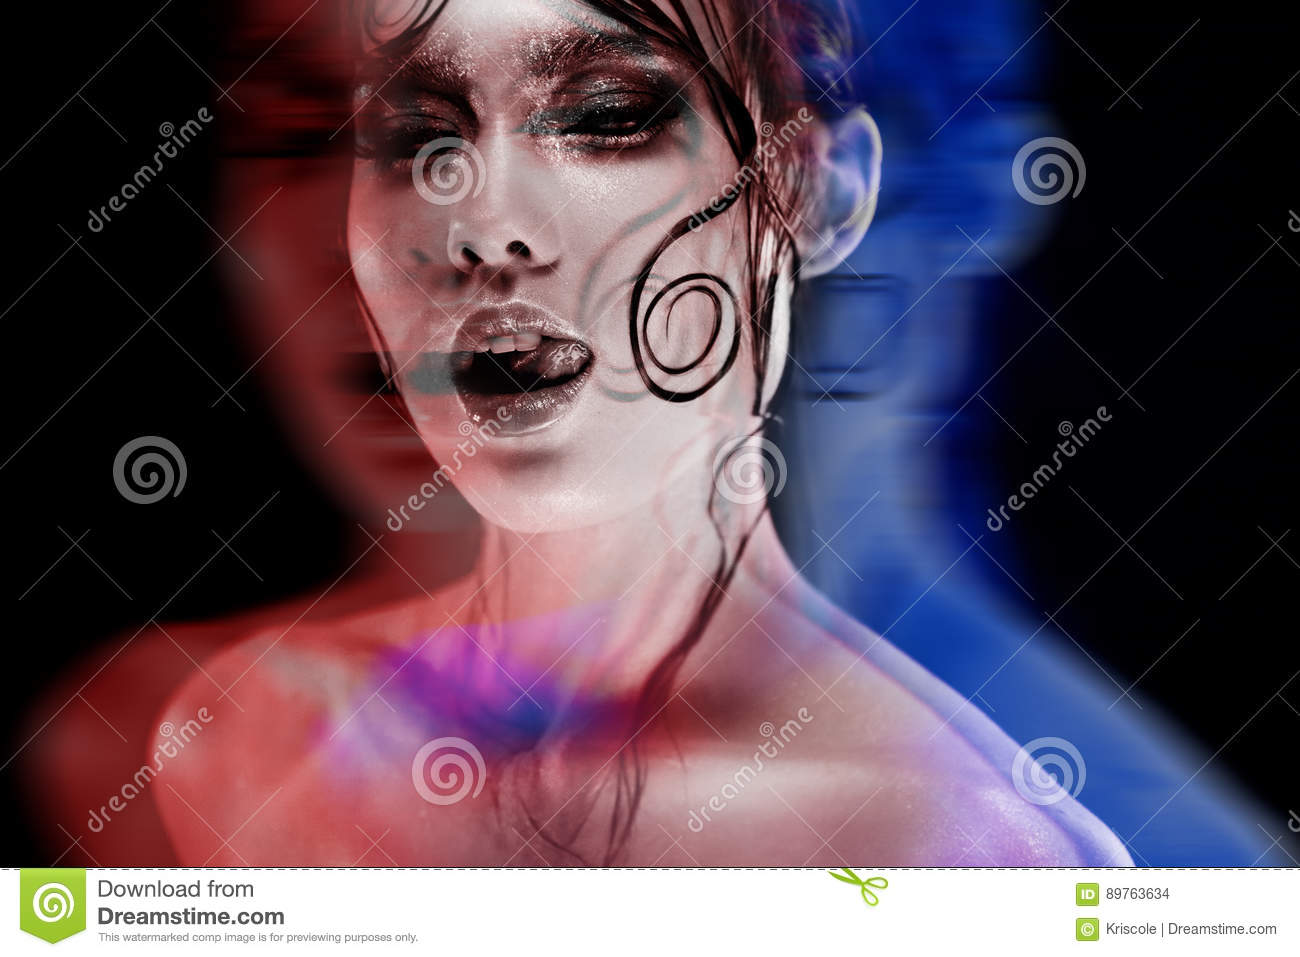 Disco-portrait with stereo effect, 3D. Beautiful girl bright makeup with a wet look shine, dark background